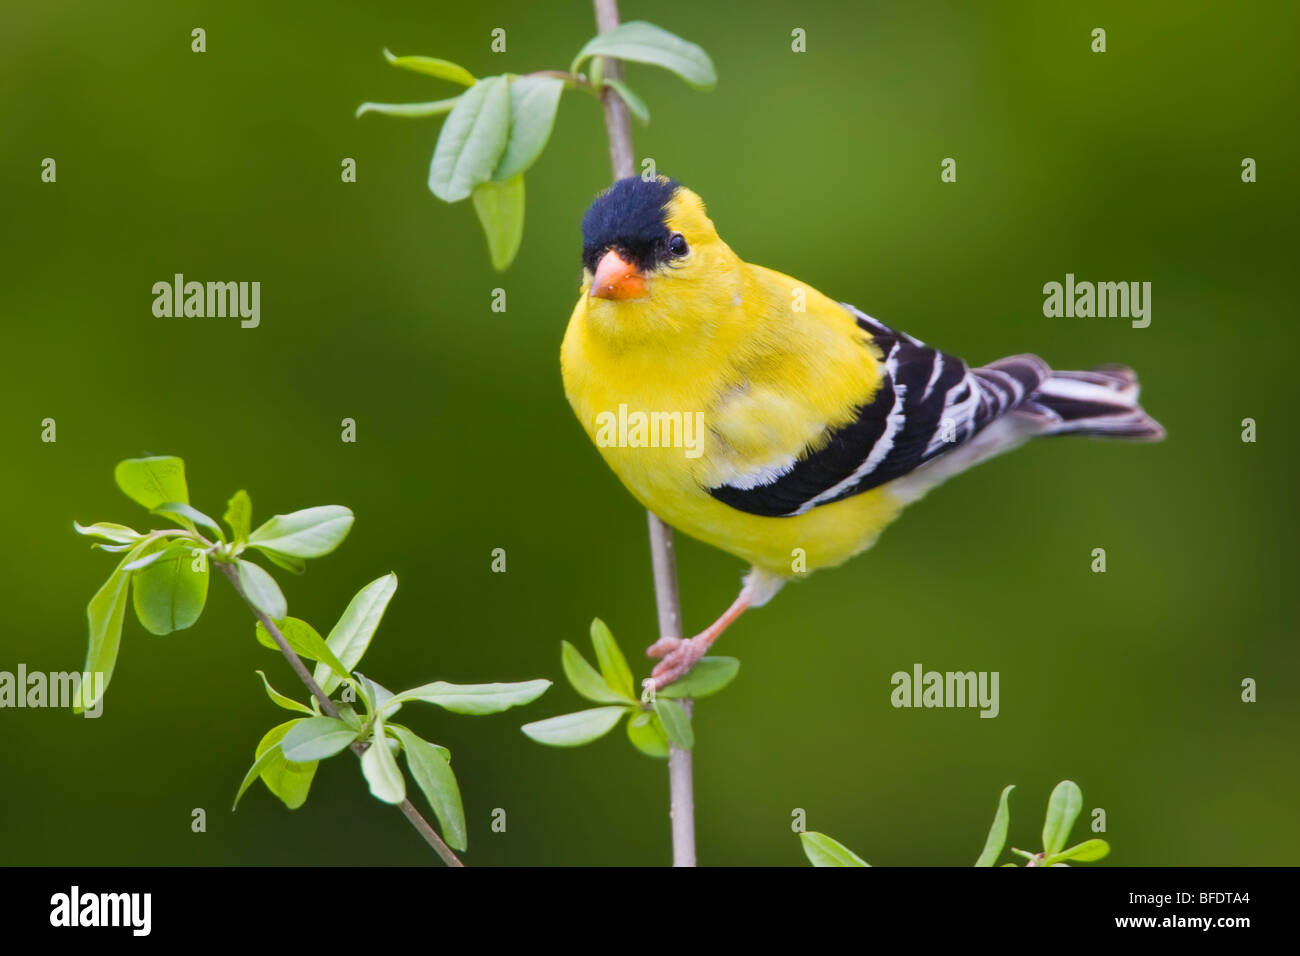 American goldfinch (Carduelis tristis) perched on a branch near Toronto, Ontario, Canada - Stock Image